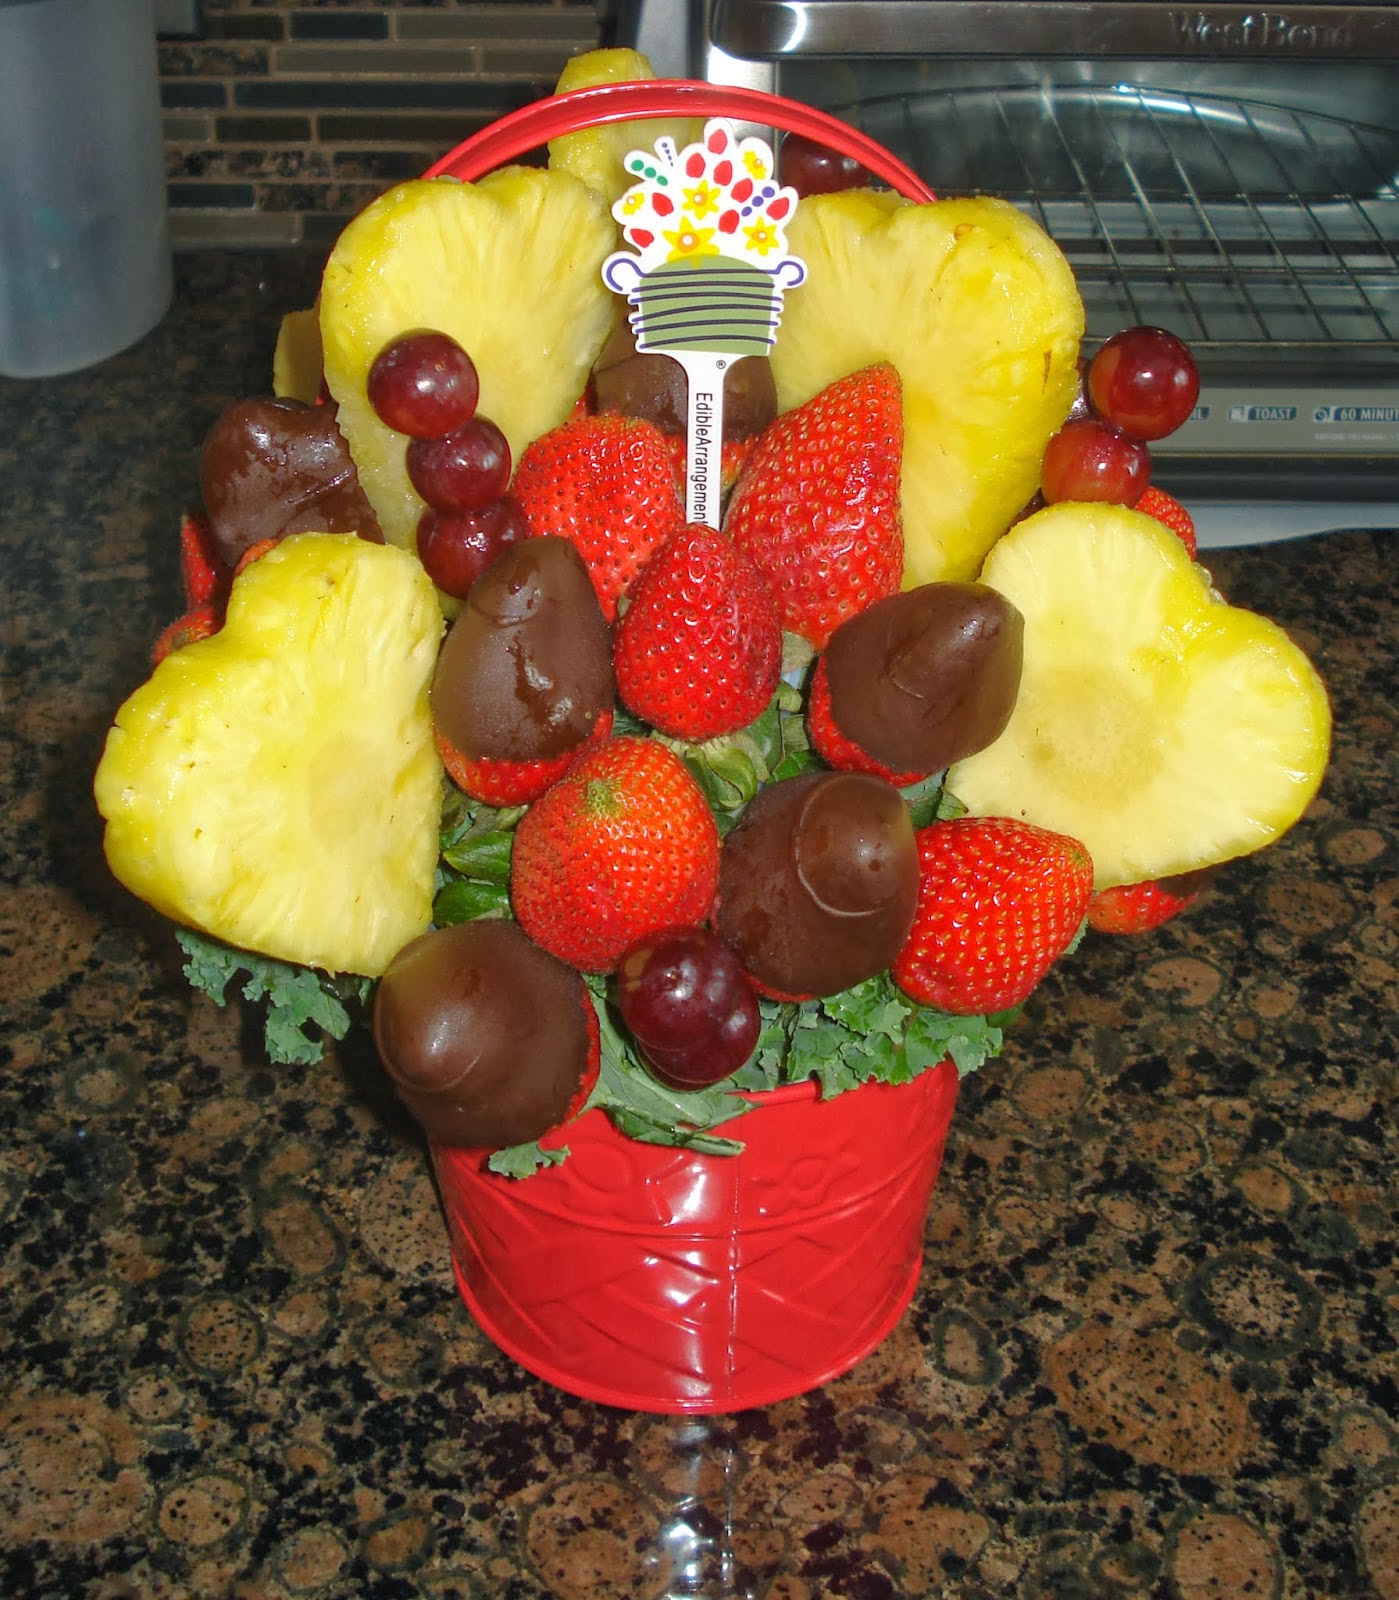 Enter to win a Valentine's Day Bouquet from Edible Arrangements. Ends 2/17.